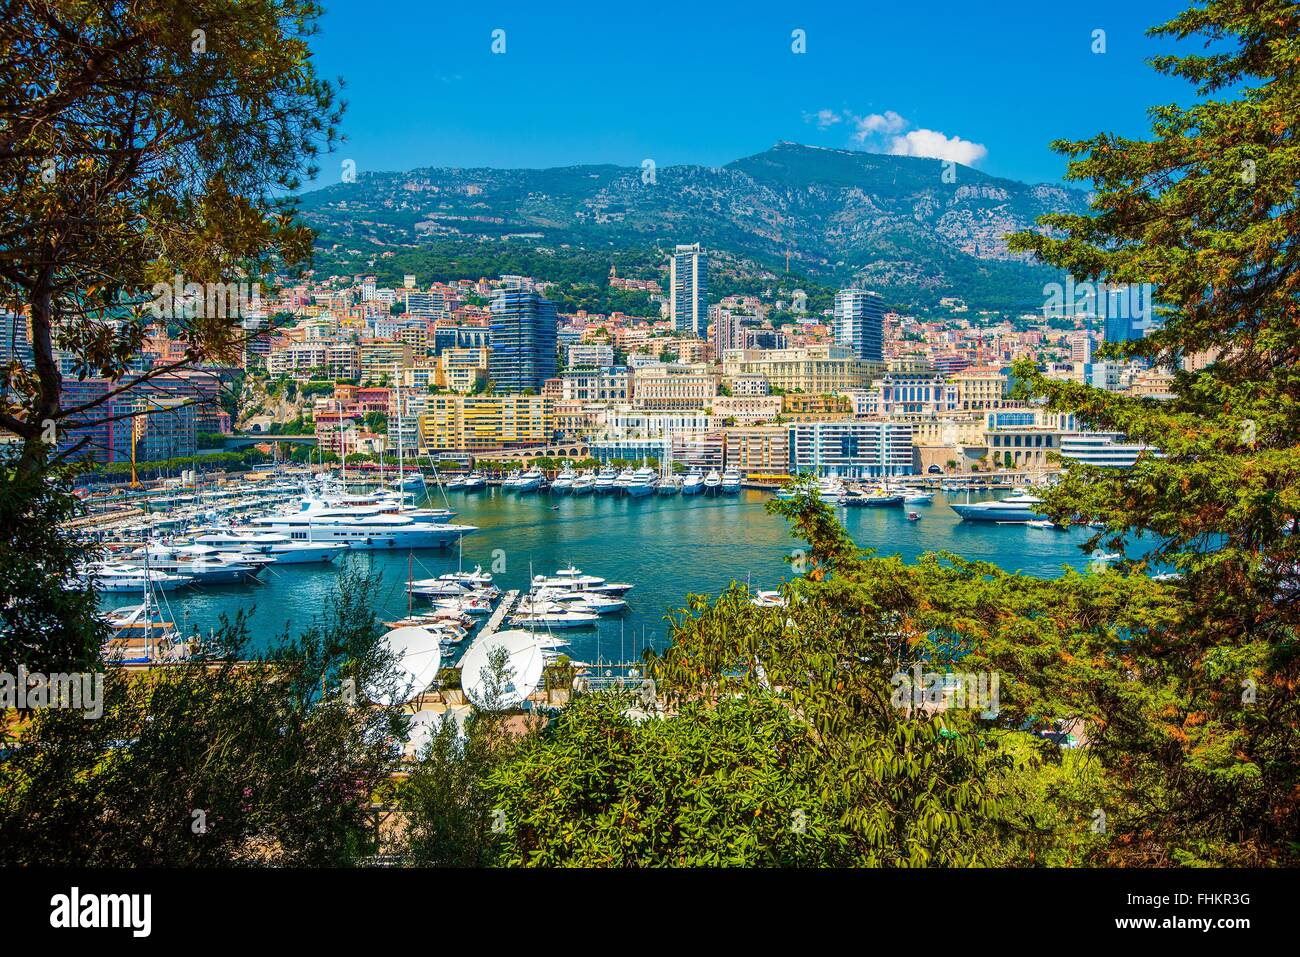 Port Hercule in the Monte Carlo, Monaco, Europe. Summer in the Monaco. - Stock Image